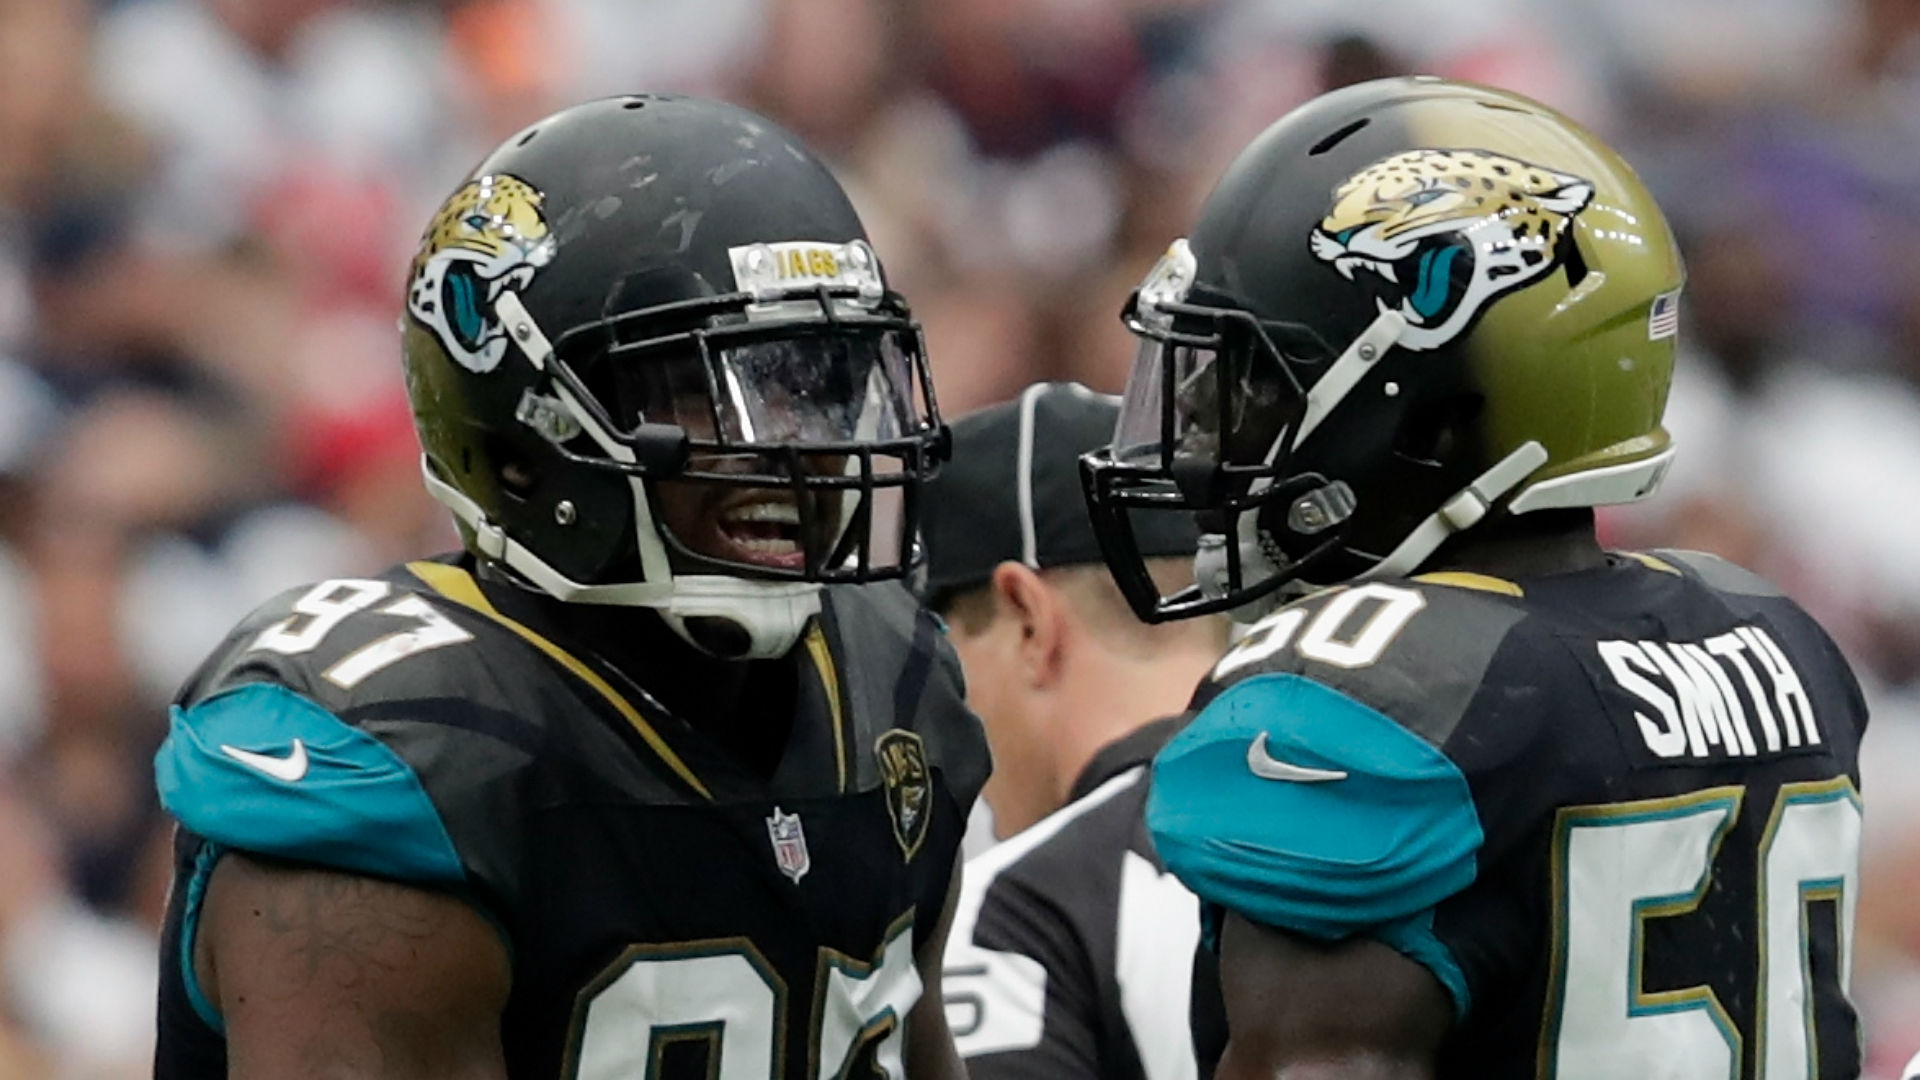 Jaguars not satisfied, view Seahawks game as chance to prove they're real